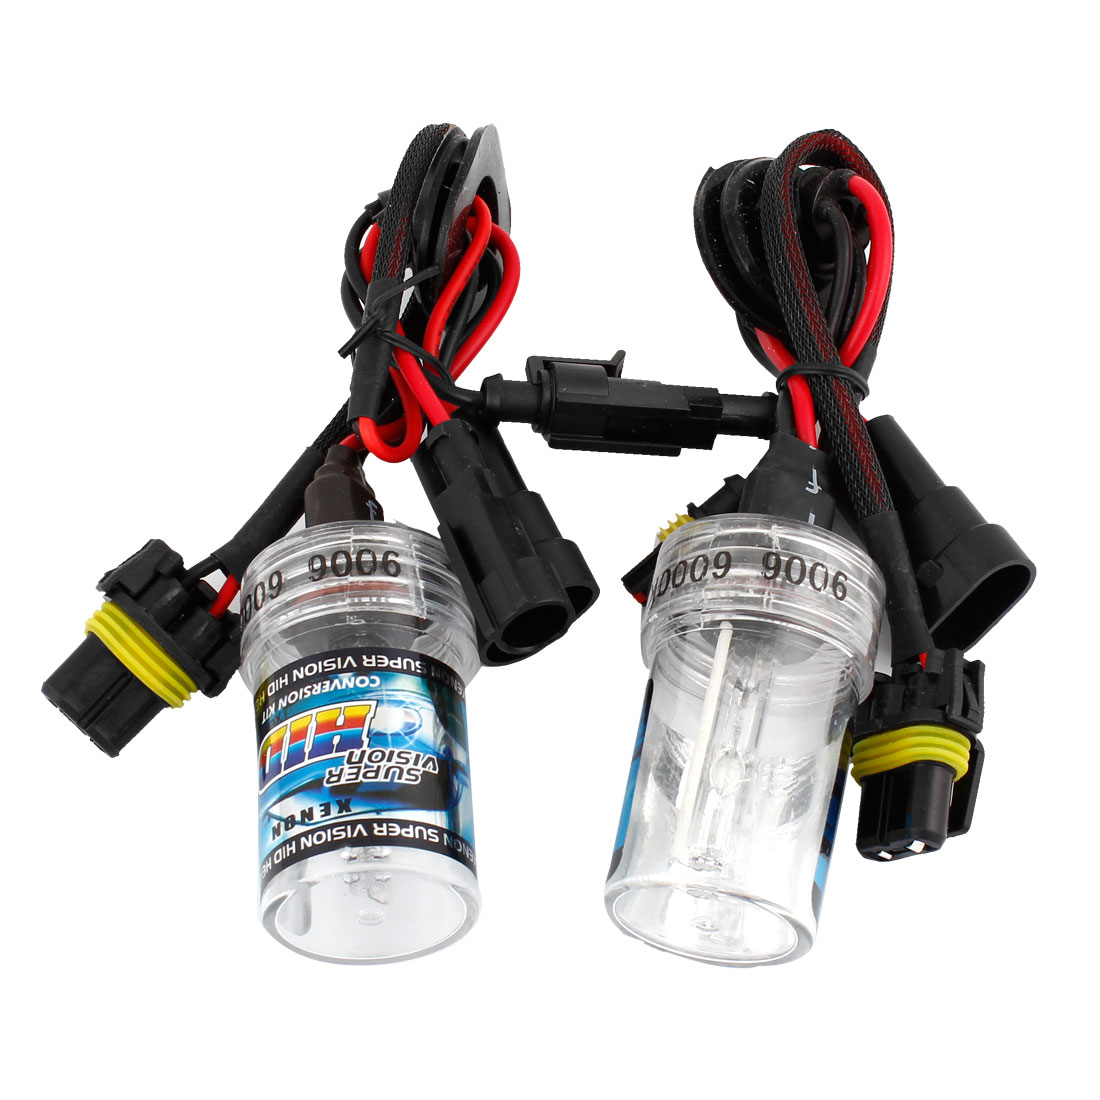 2PCS Automobile Car 9006 6000K White Light HID Xenon Headlight Lamp Bulbs